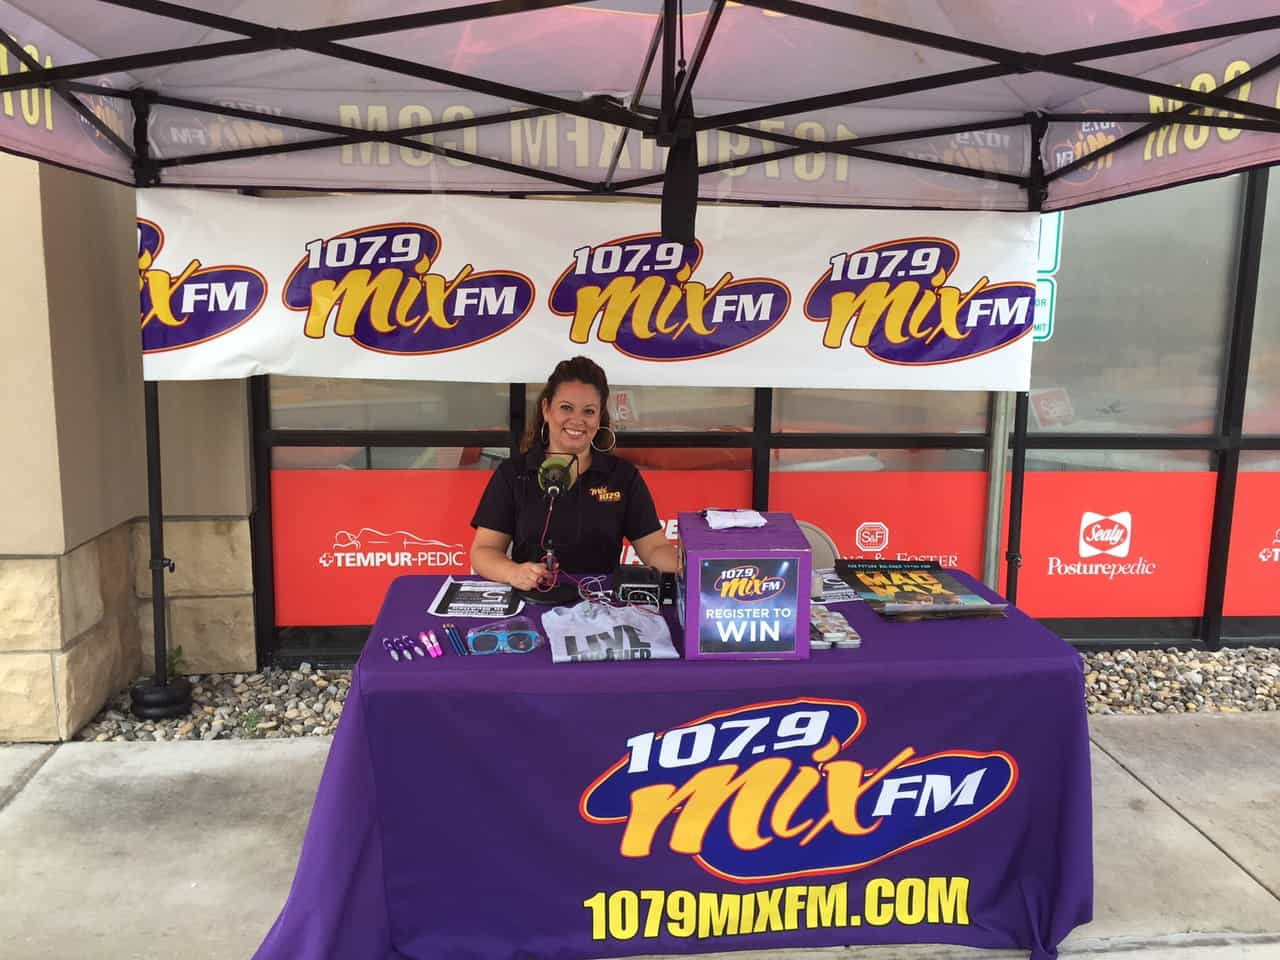 Grand Opening Mattress Furniture with 107.9 Mix FM : 107.9 Mix FM KVLY107.9 Mix FM KVLY